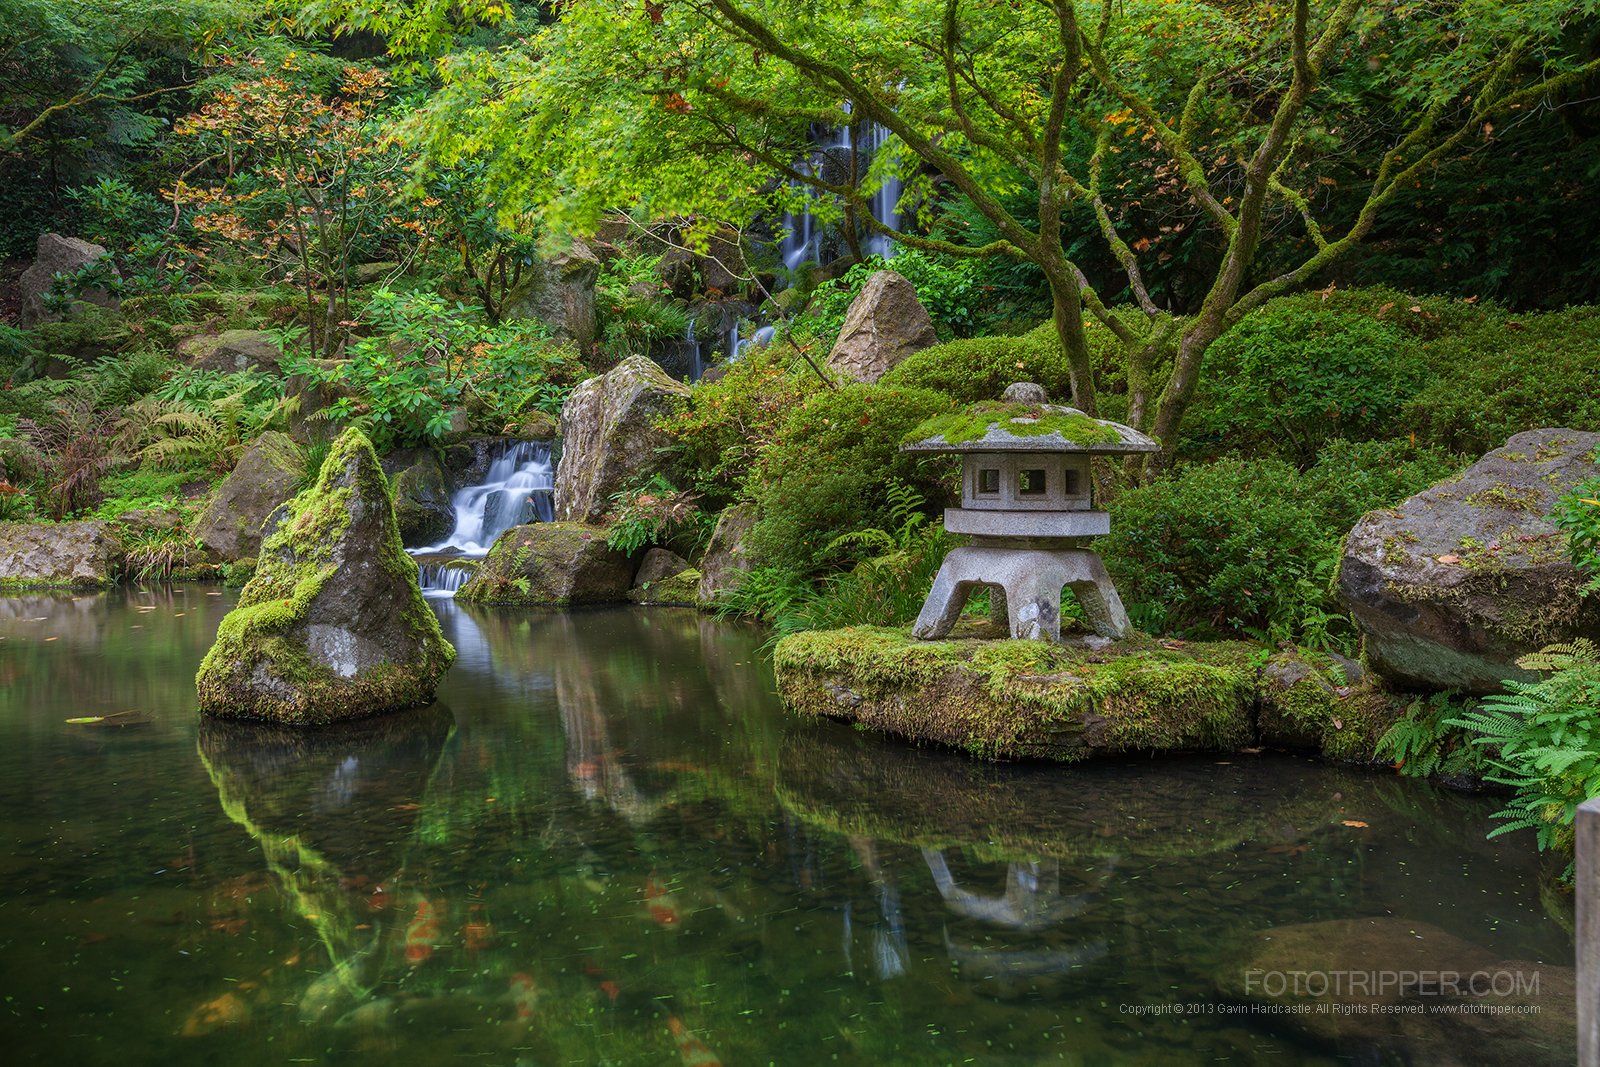 How to shoot portland japanese garden fototripper for Koi ponds and gardens